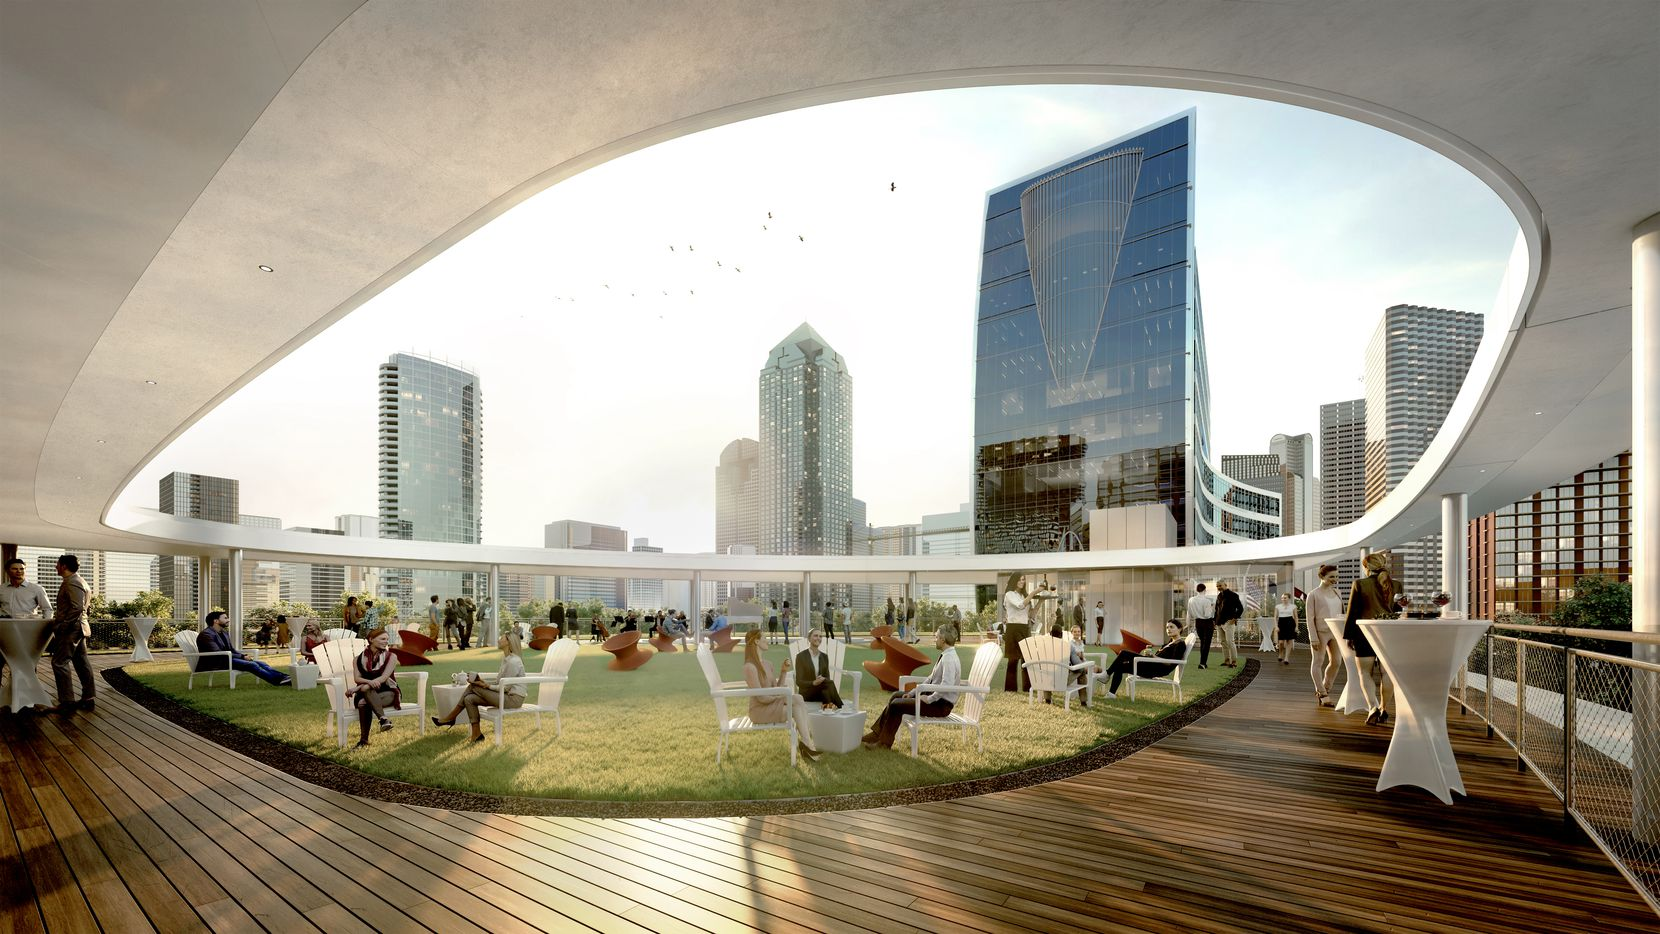 A rendering of the rooftop deck of a pavilion planned to be included in the expansion of Klyde Warren Park.